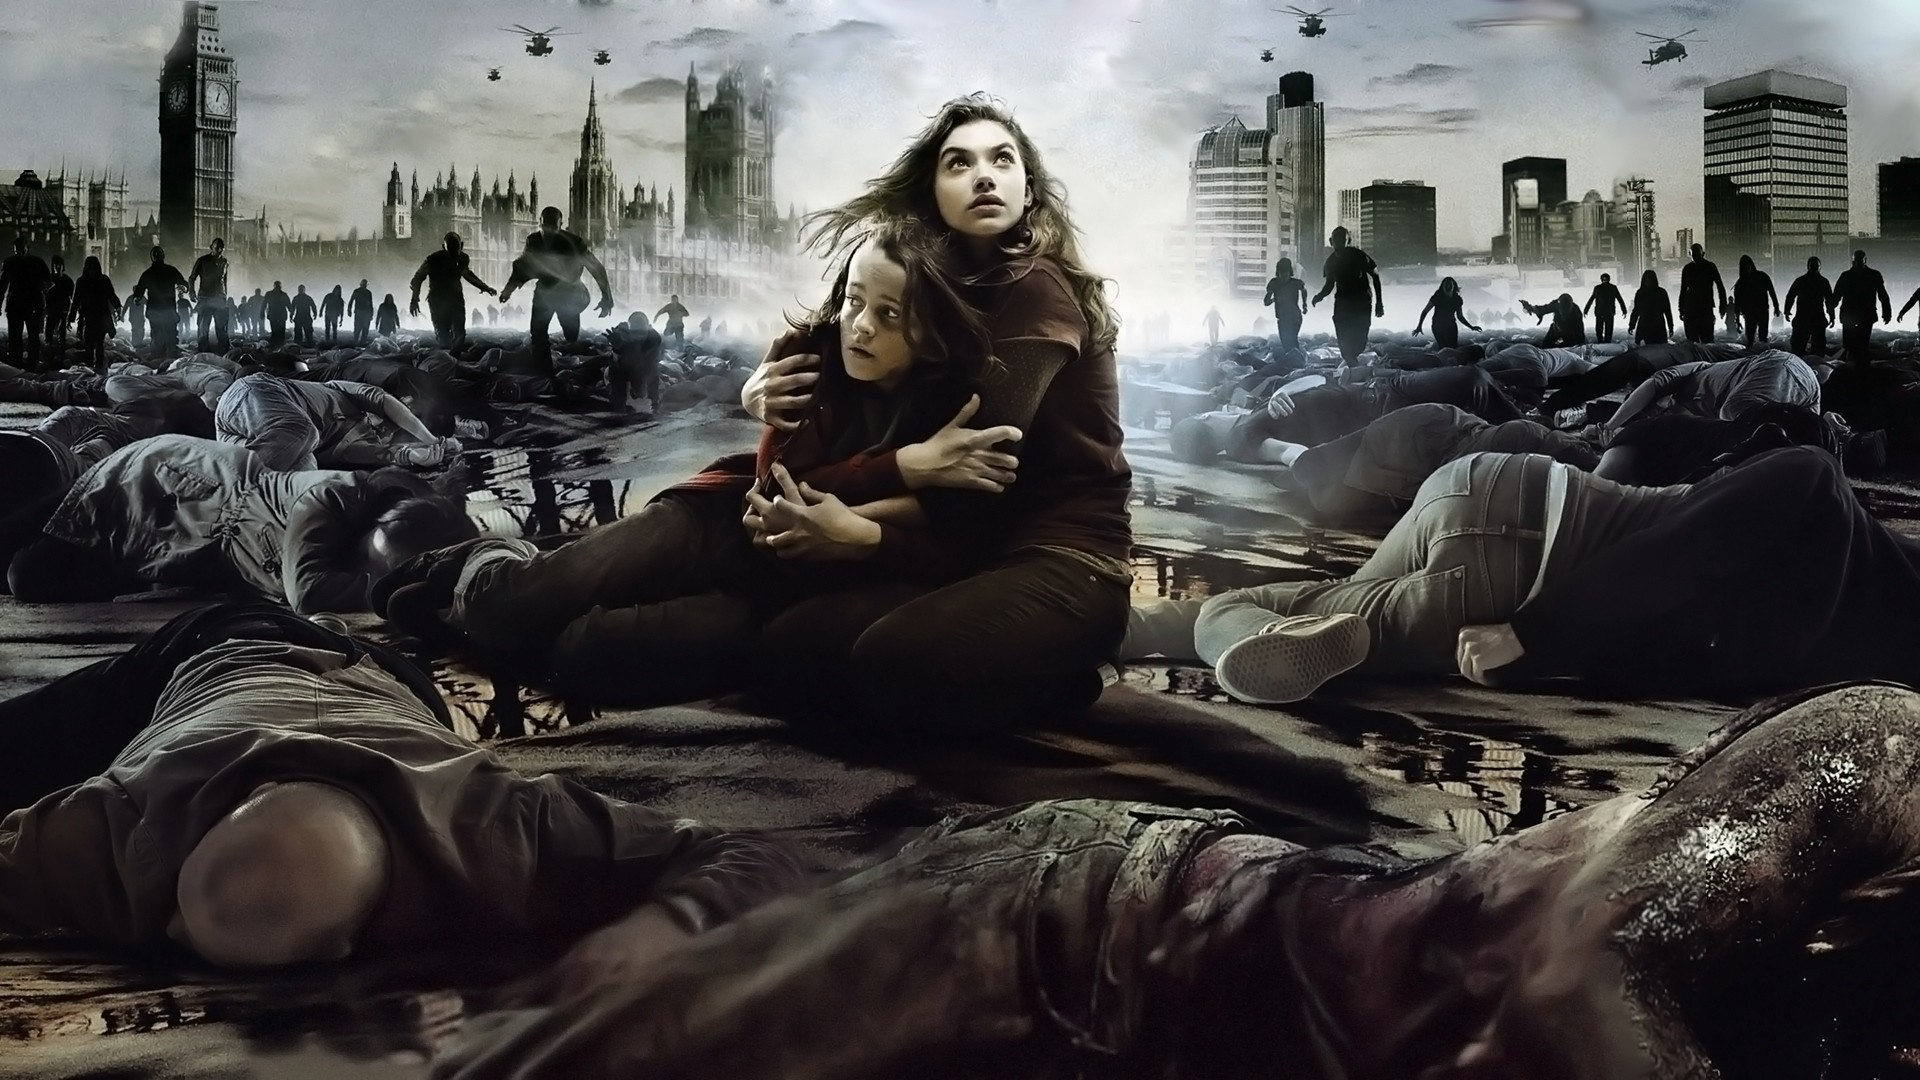 1920x1080 28 Weeks Later